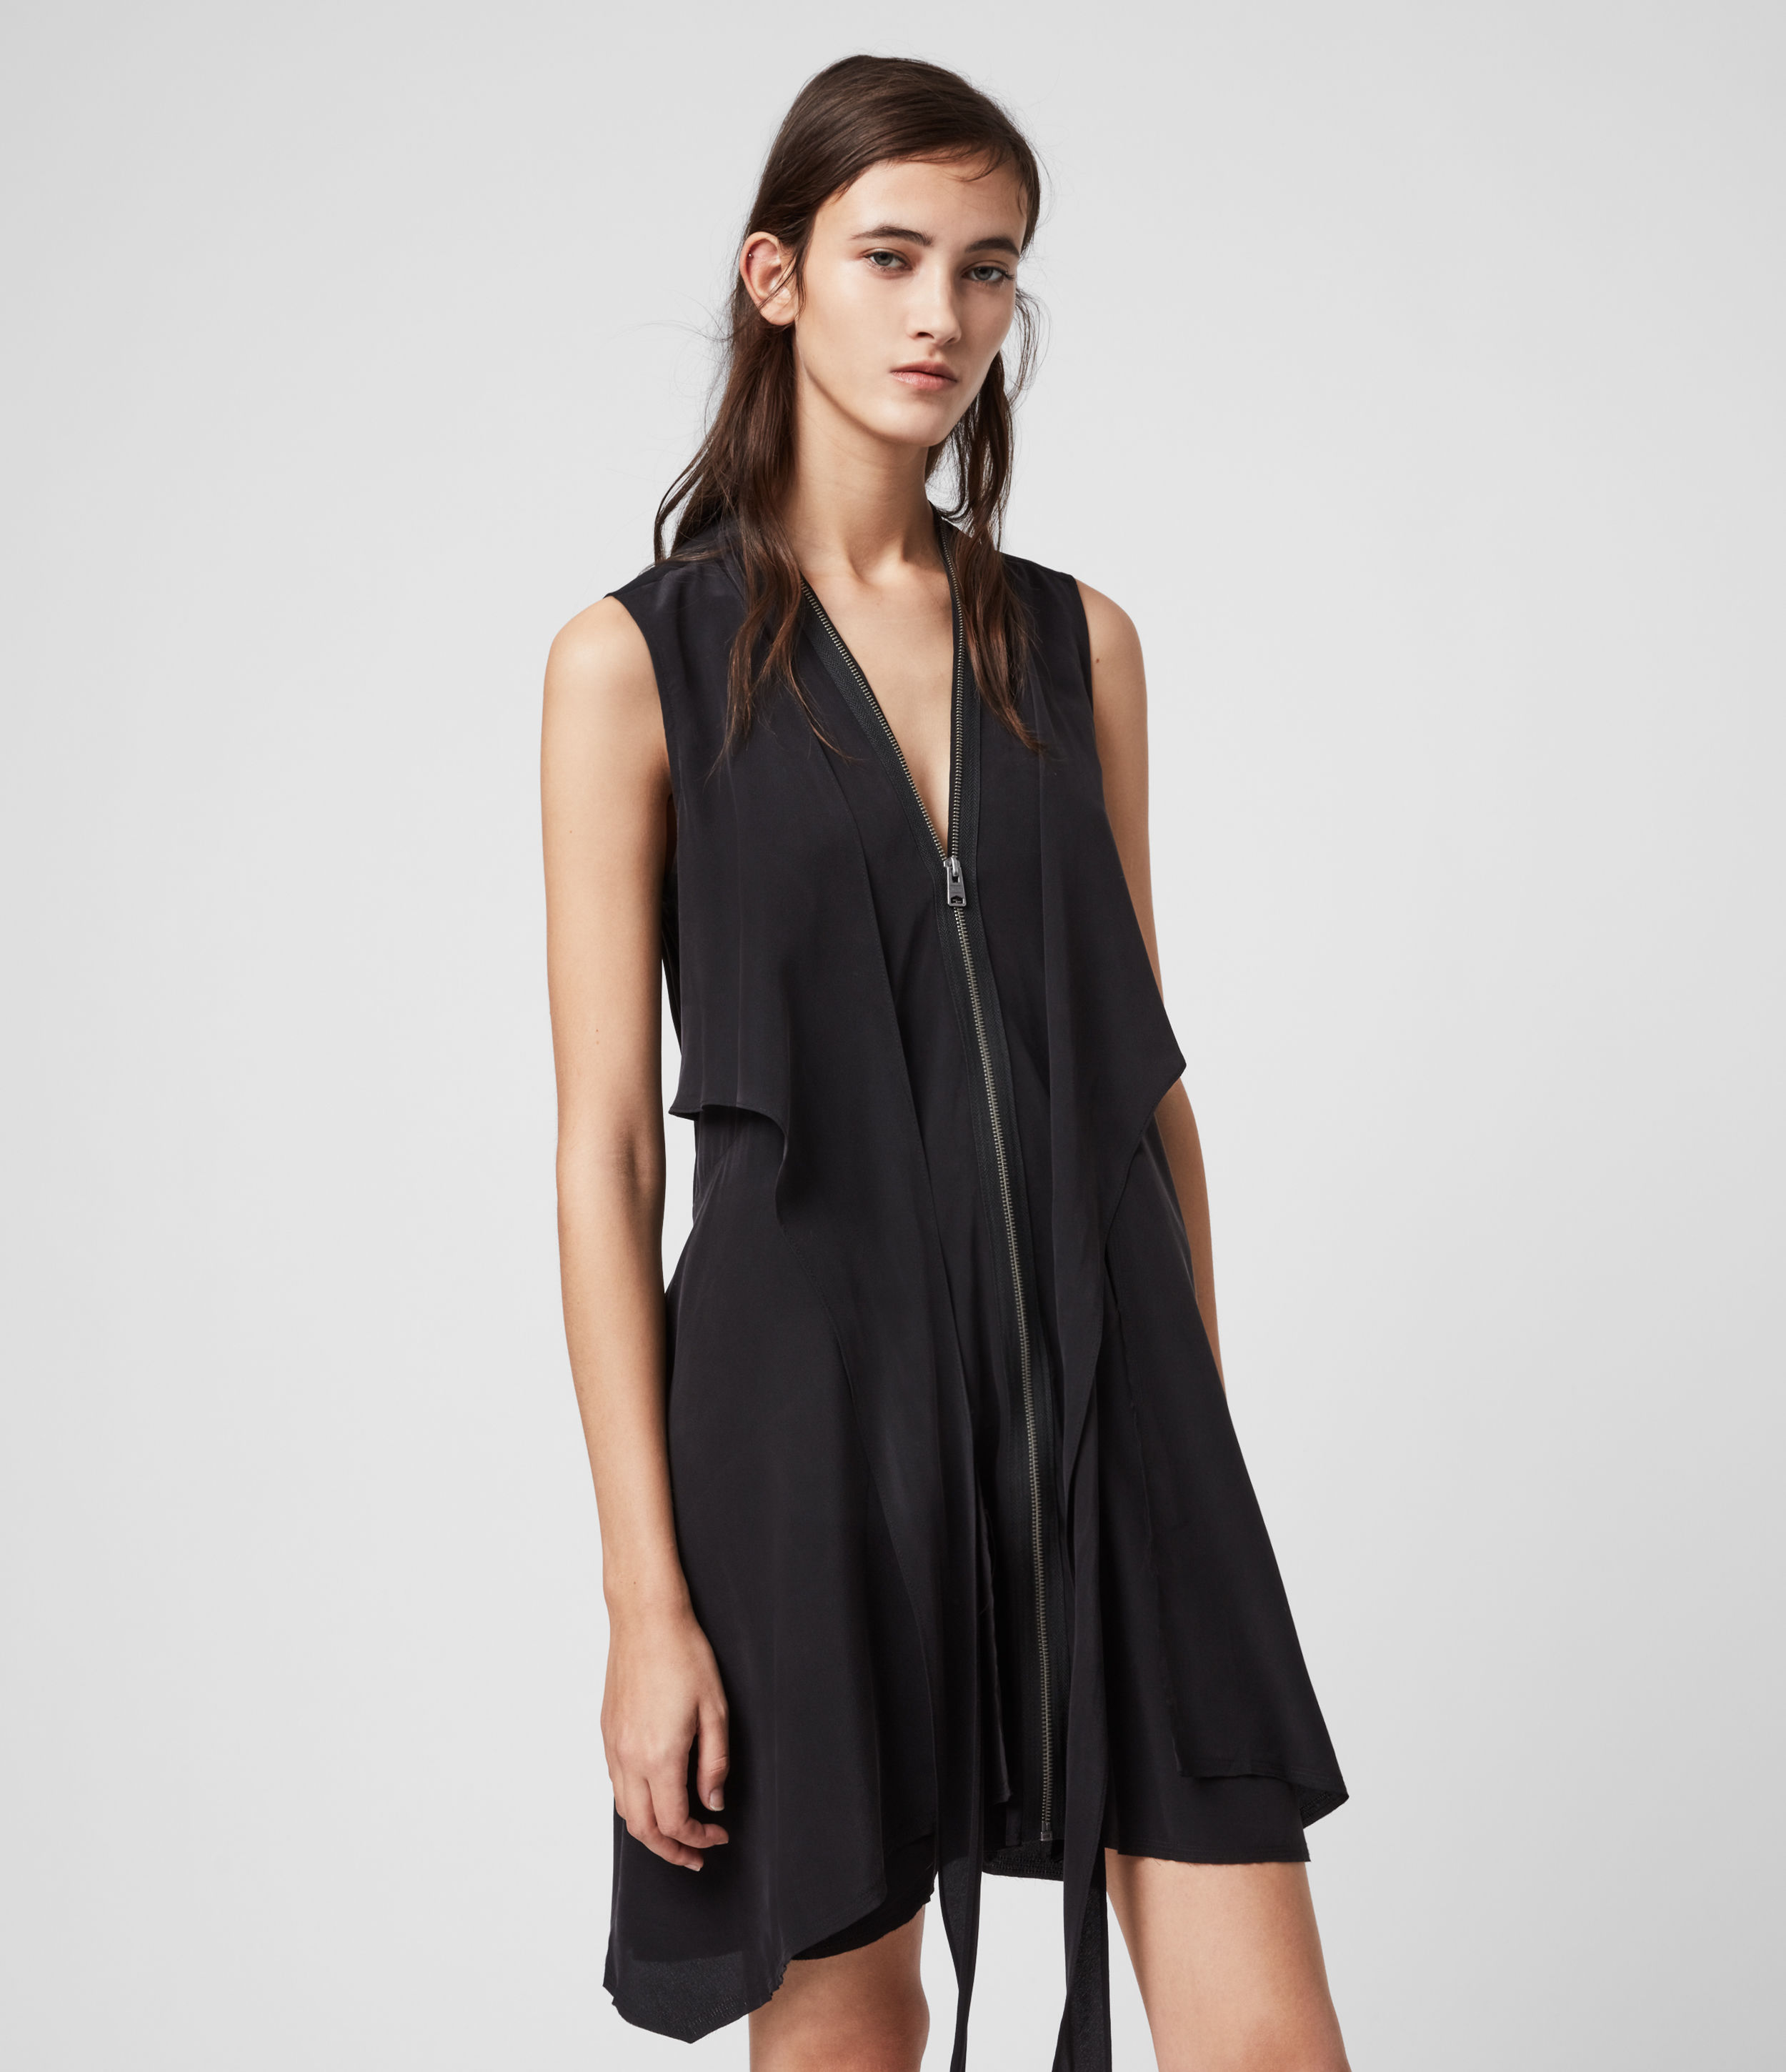 AllSaints Women's Silk Lightweight Jayda Dress, Black, Size: L